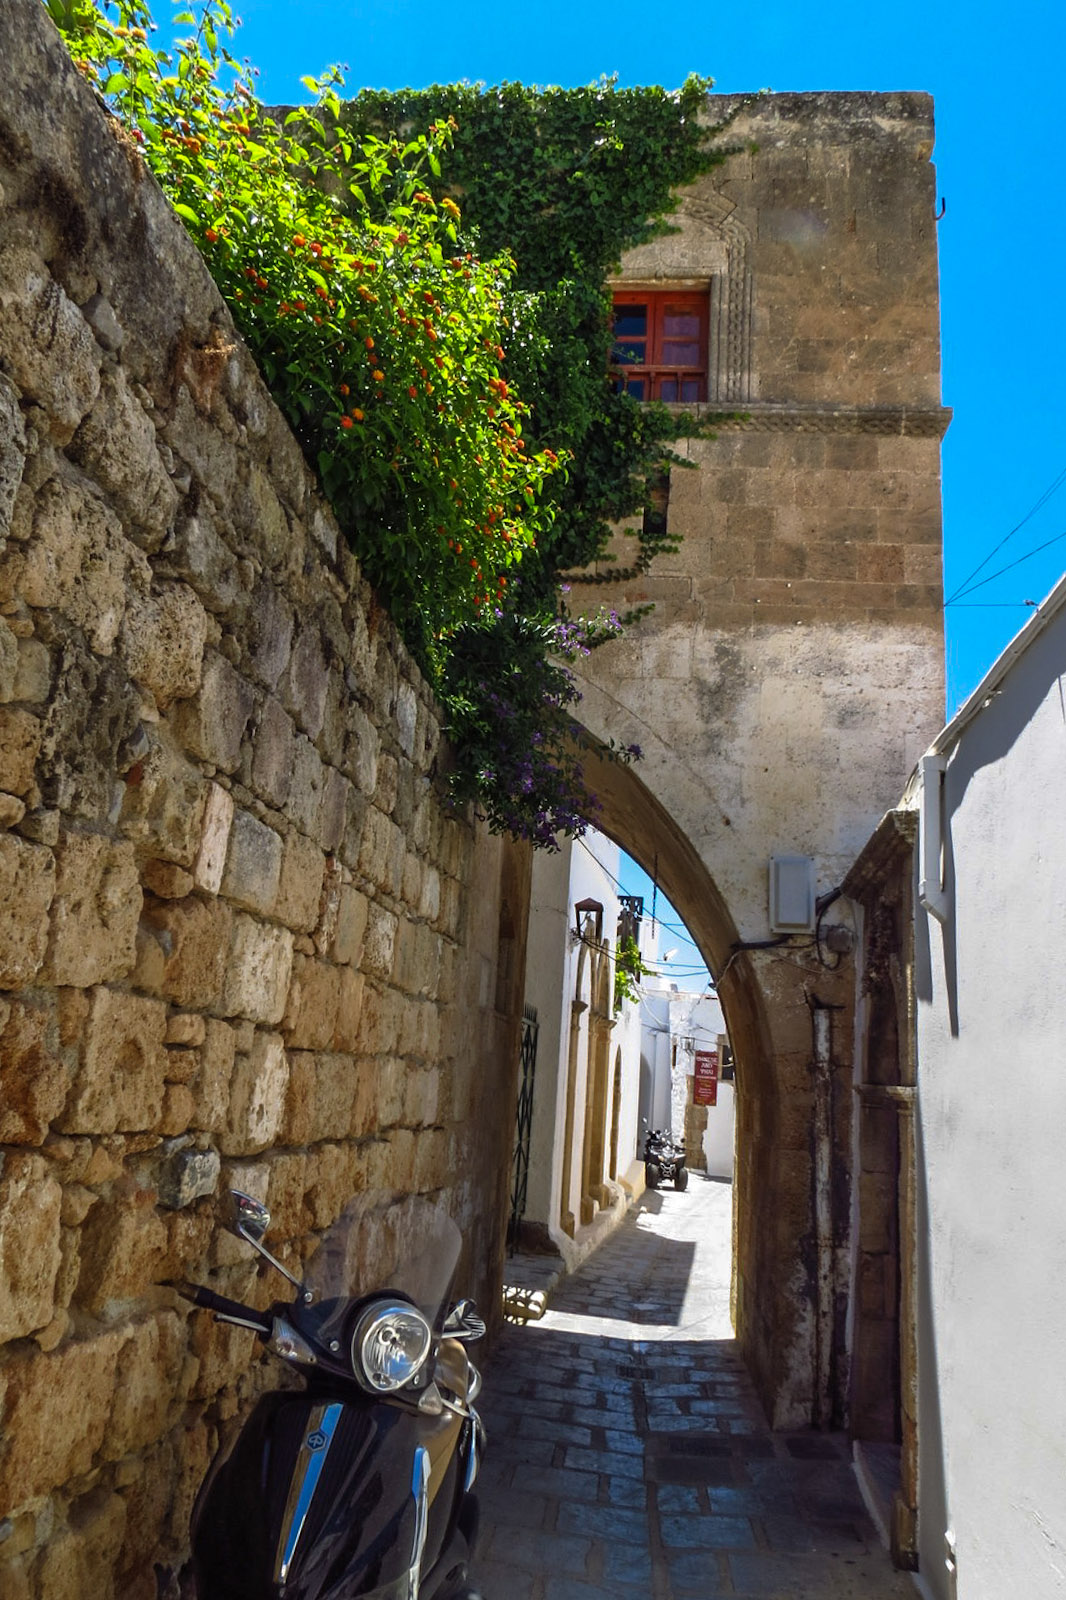 lindos-moped-and-arch